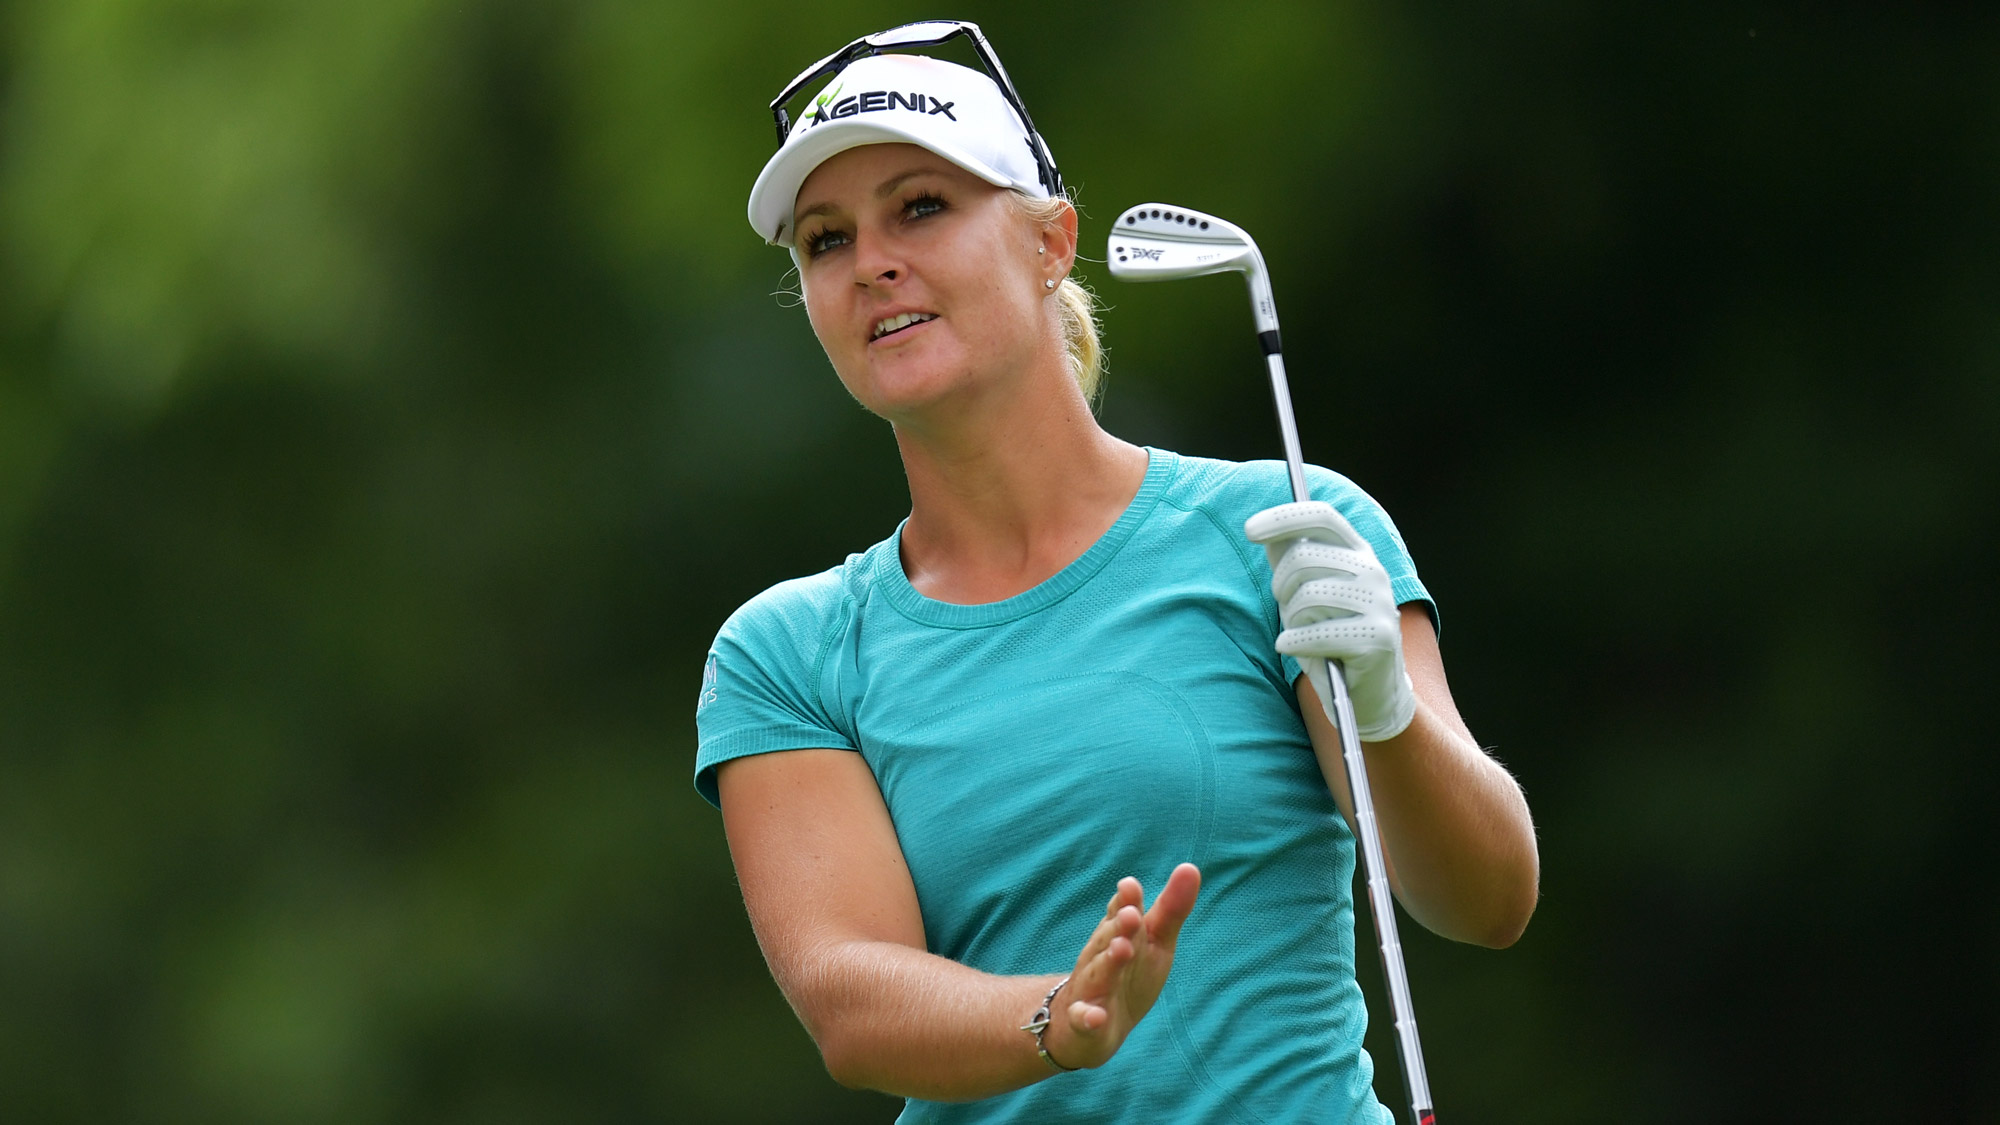 Anna Nordqvist Swings in Final Round of Walmart NW Arkansas Championship